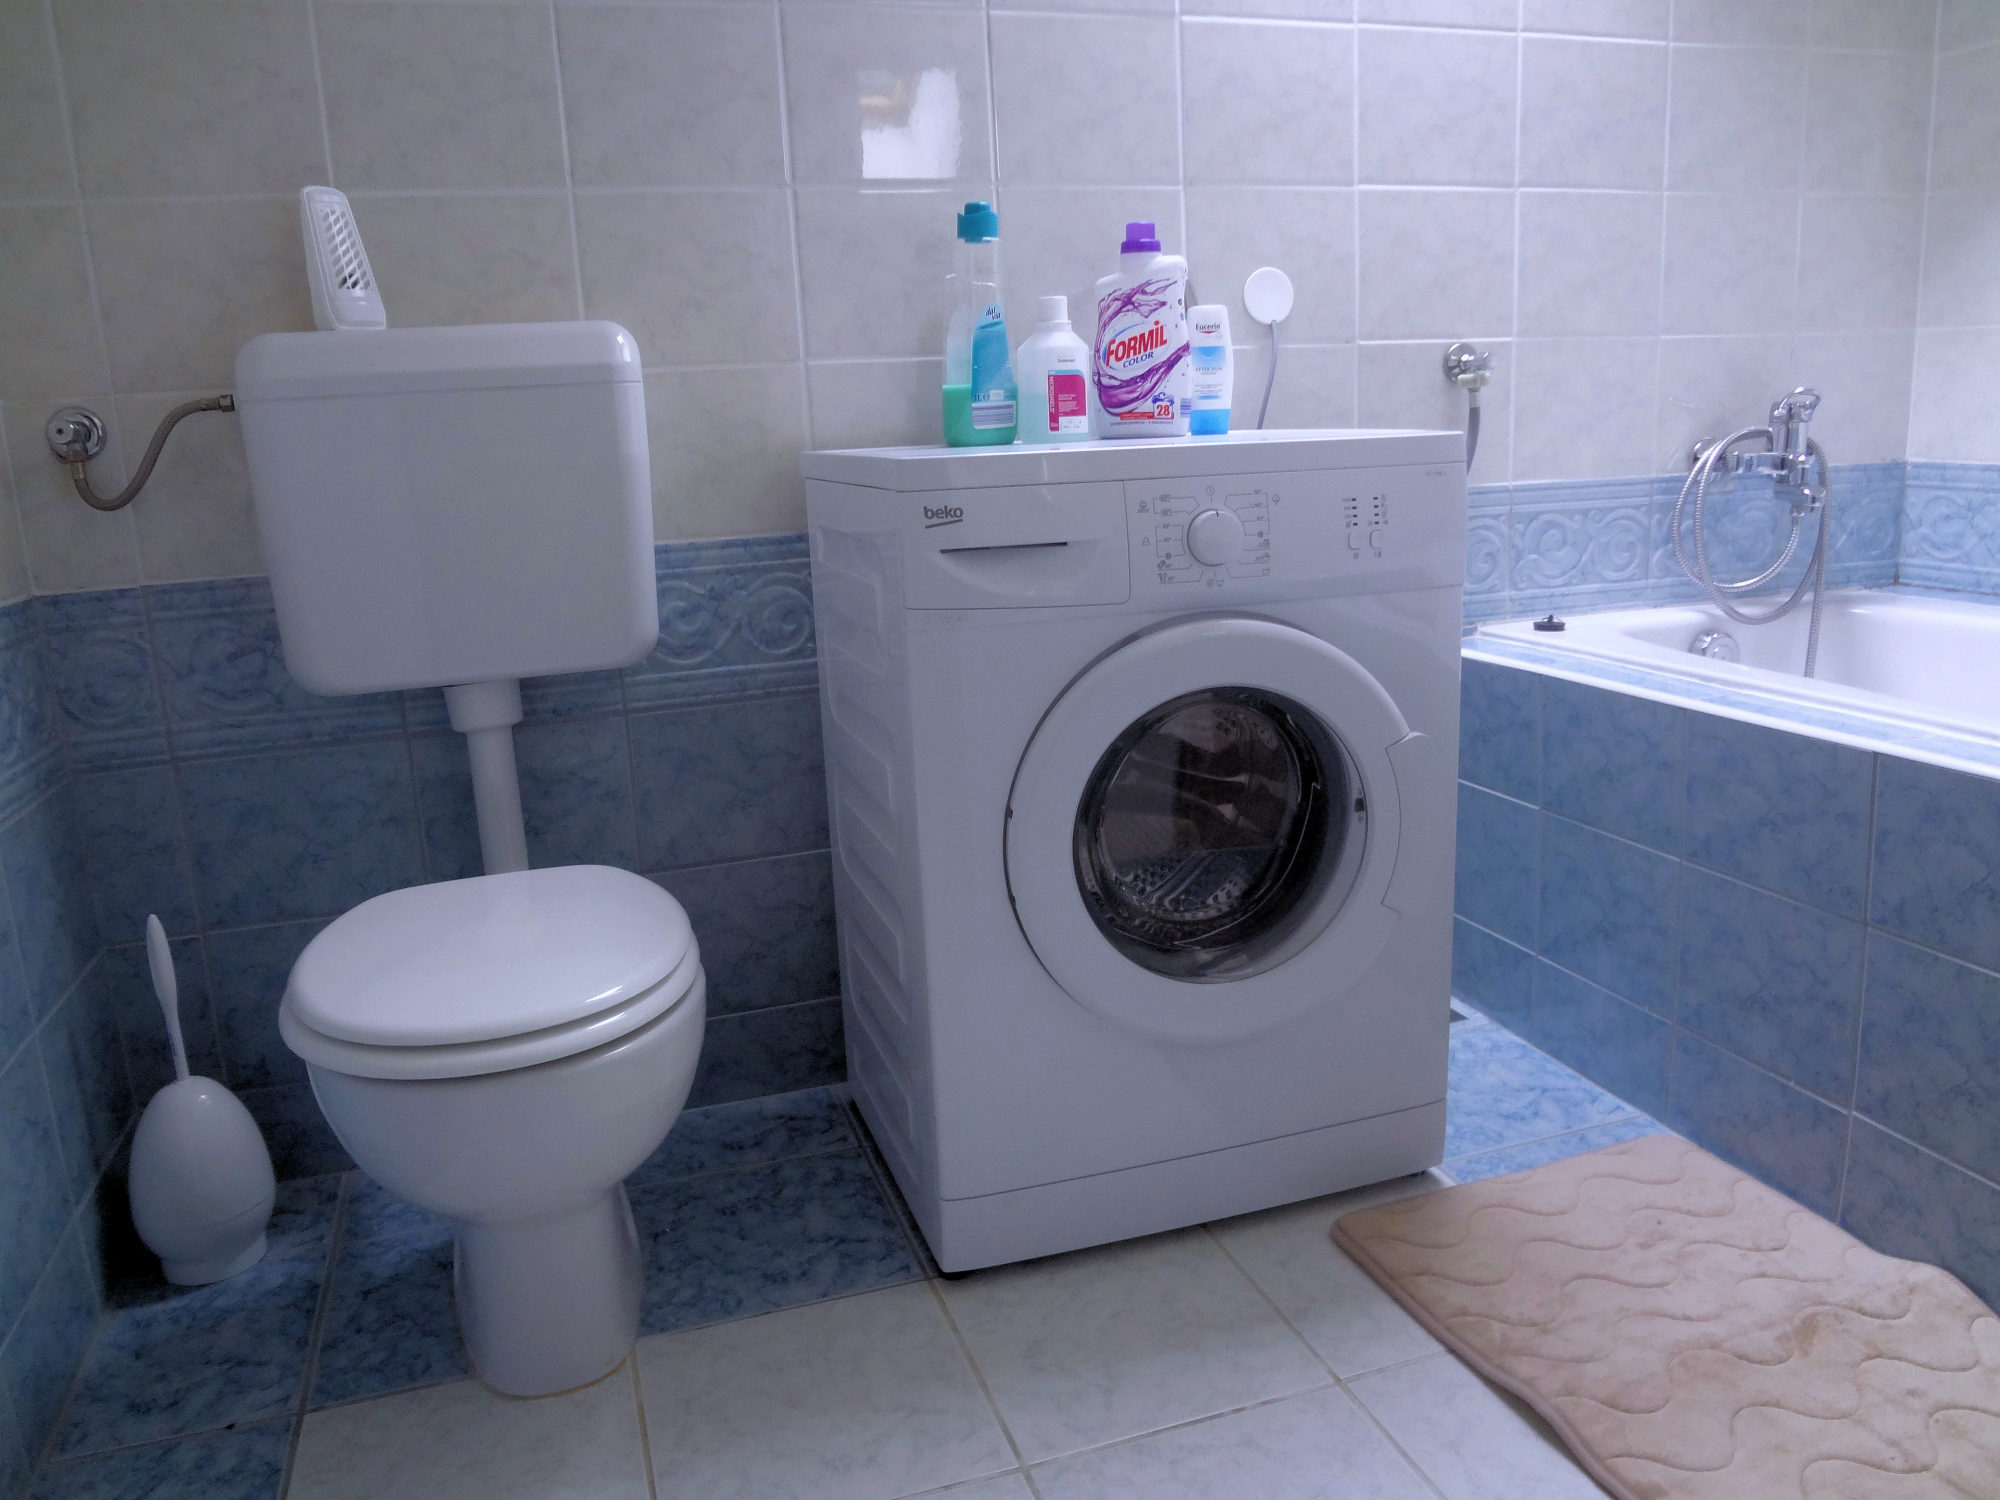 A bathtub, washing machine and toilet in the bathroom of Apartments Fine Stay in the Bled area of Slovenia